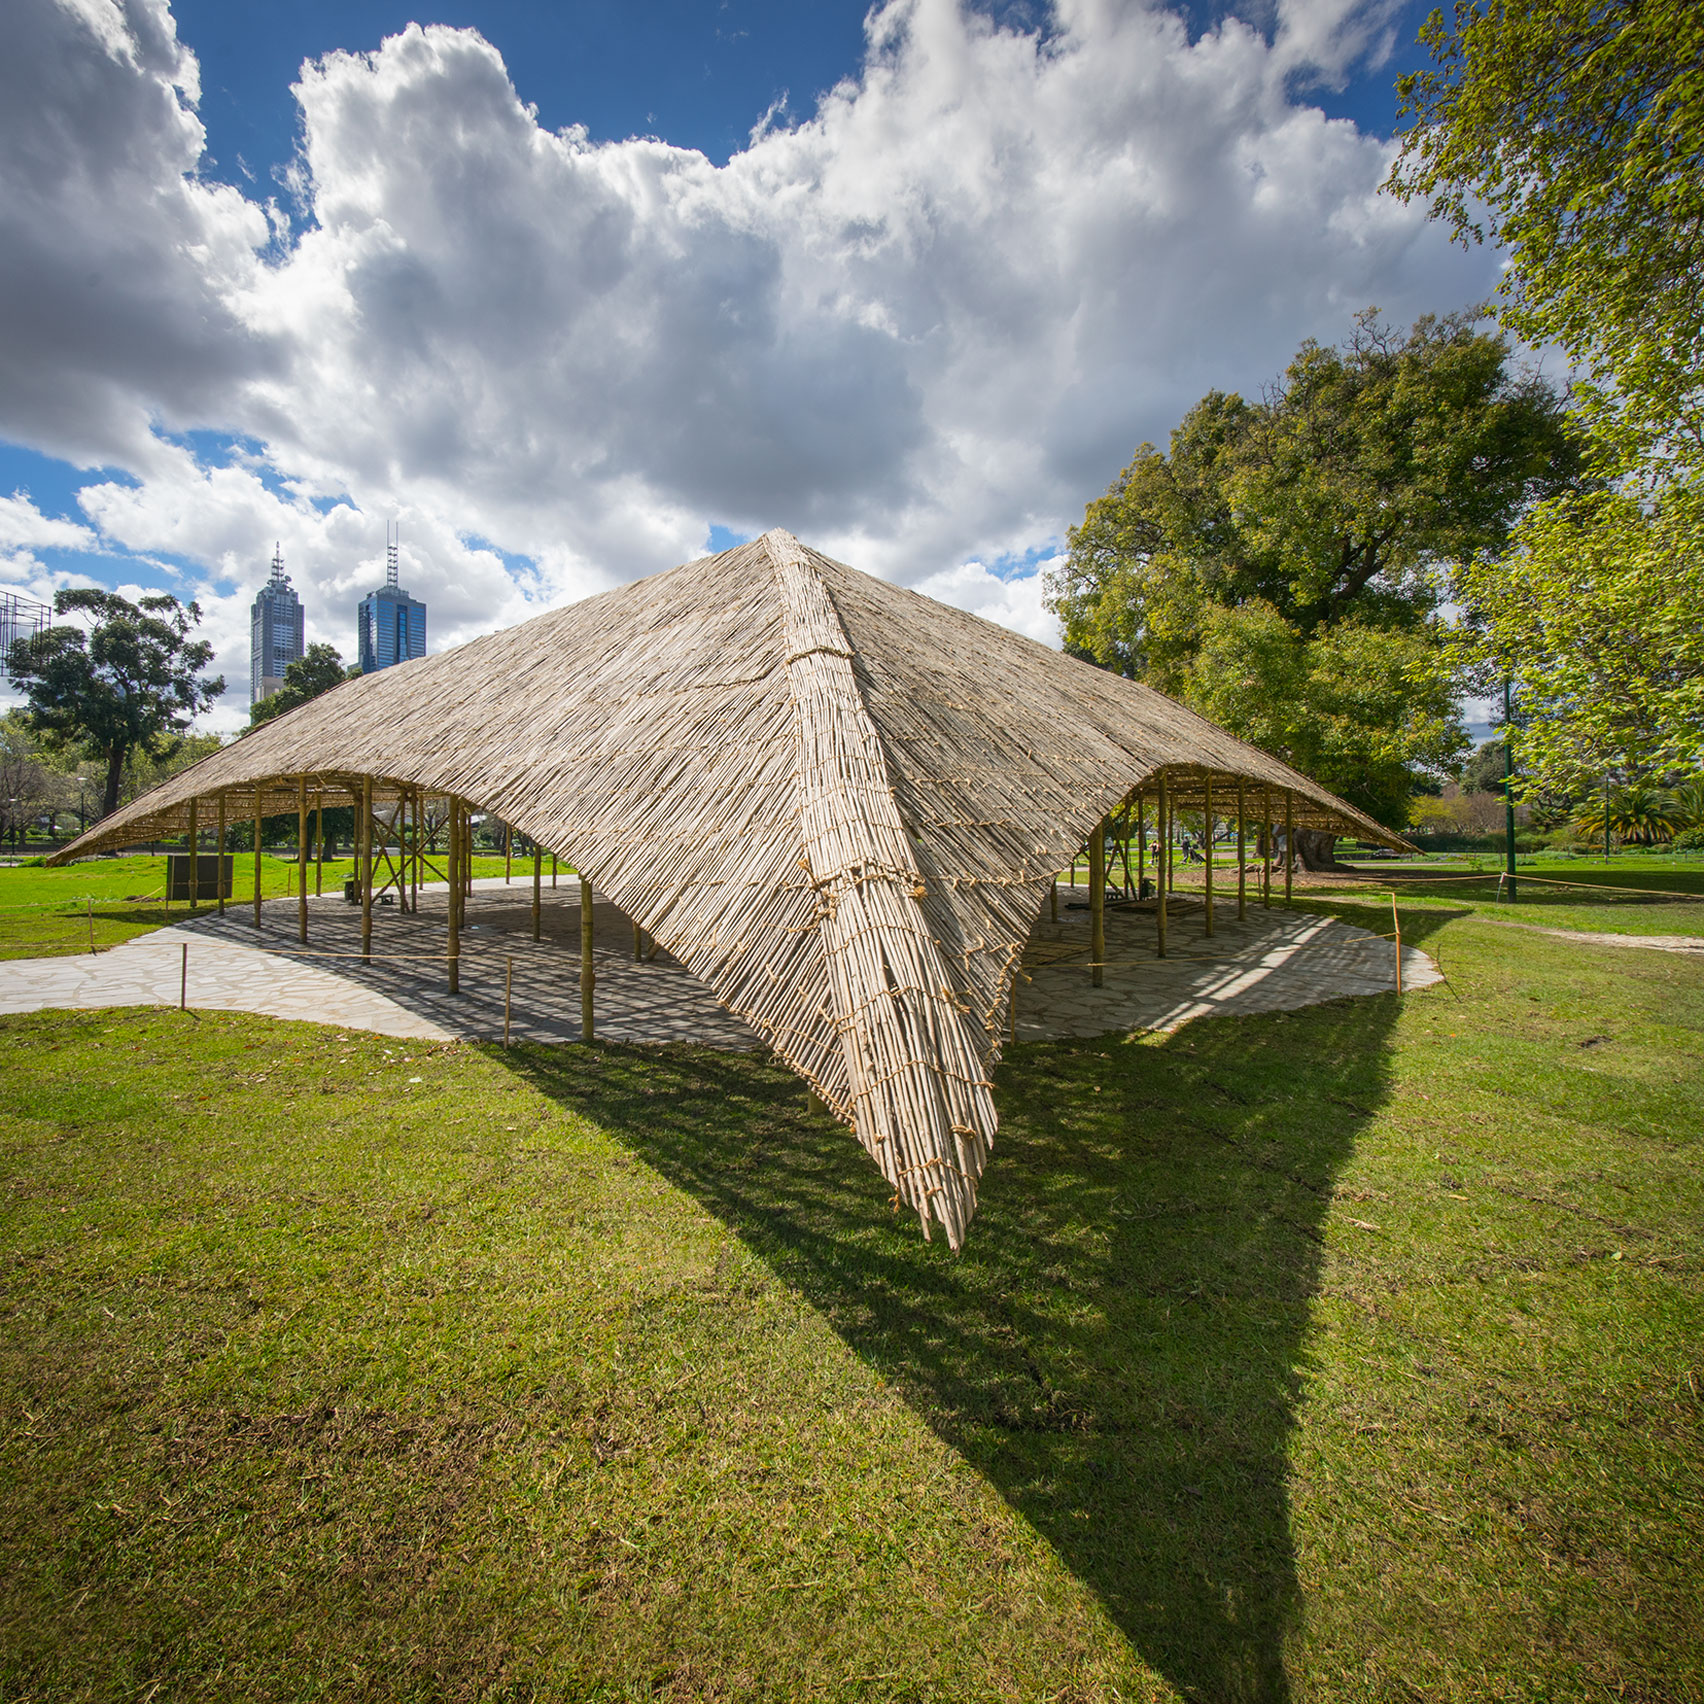 Studio Mumbai Presents MPavilion 2016 Built Using Seven Kilometres Of Bamboo